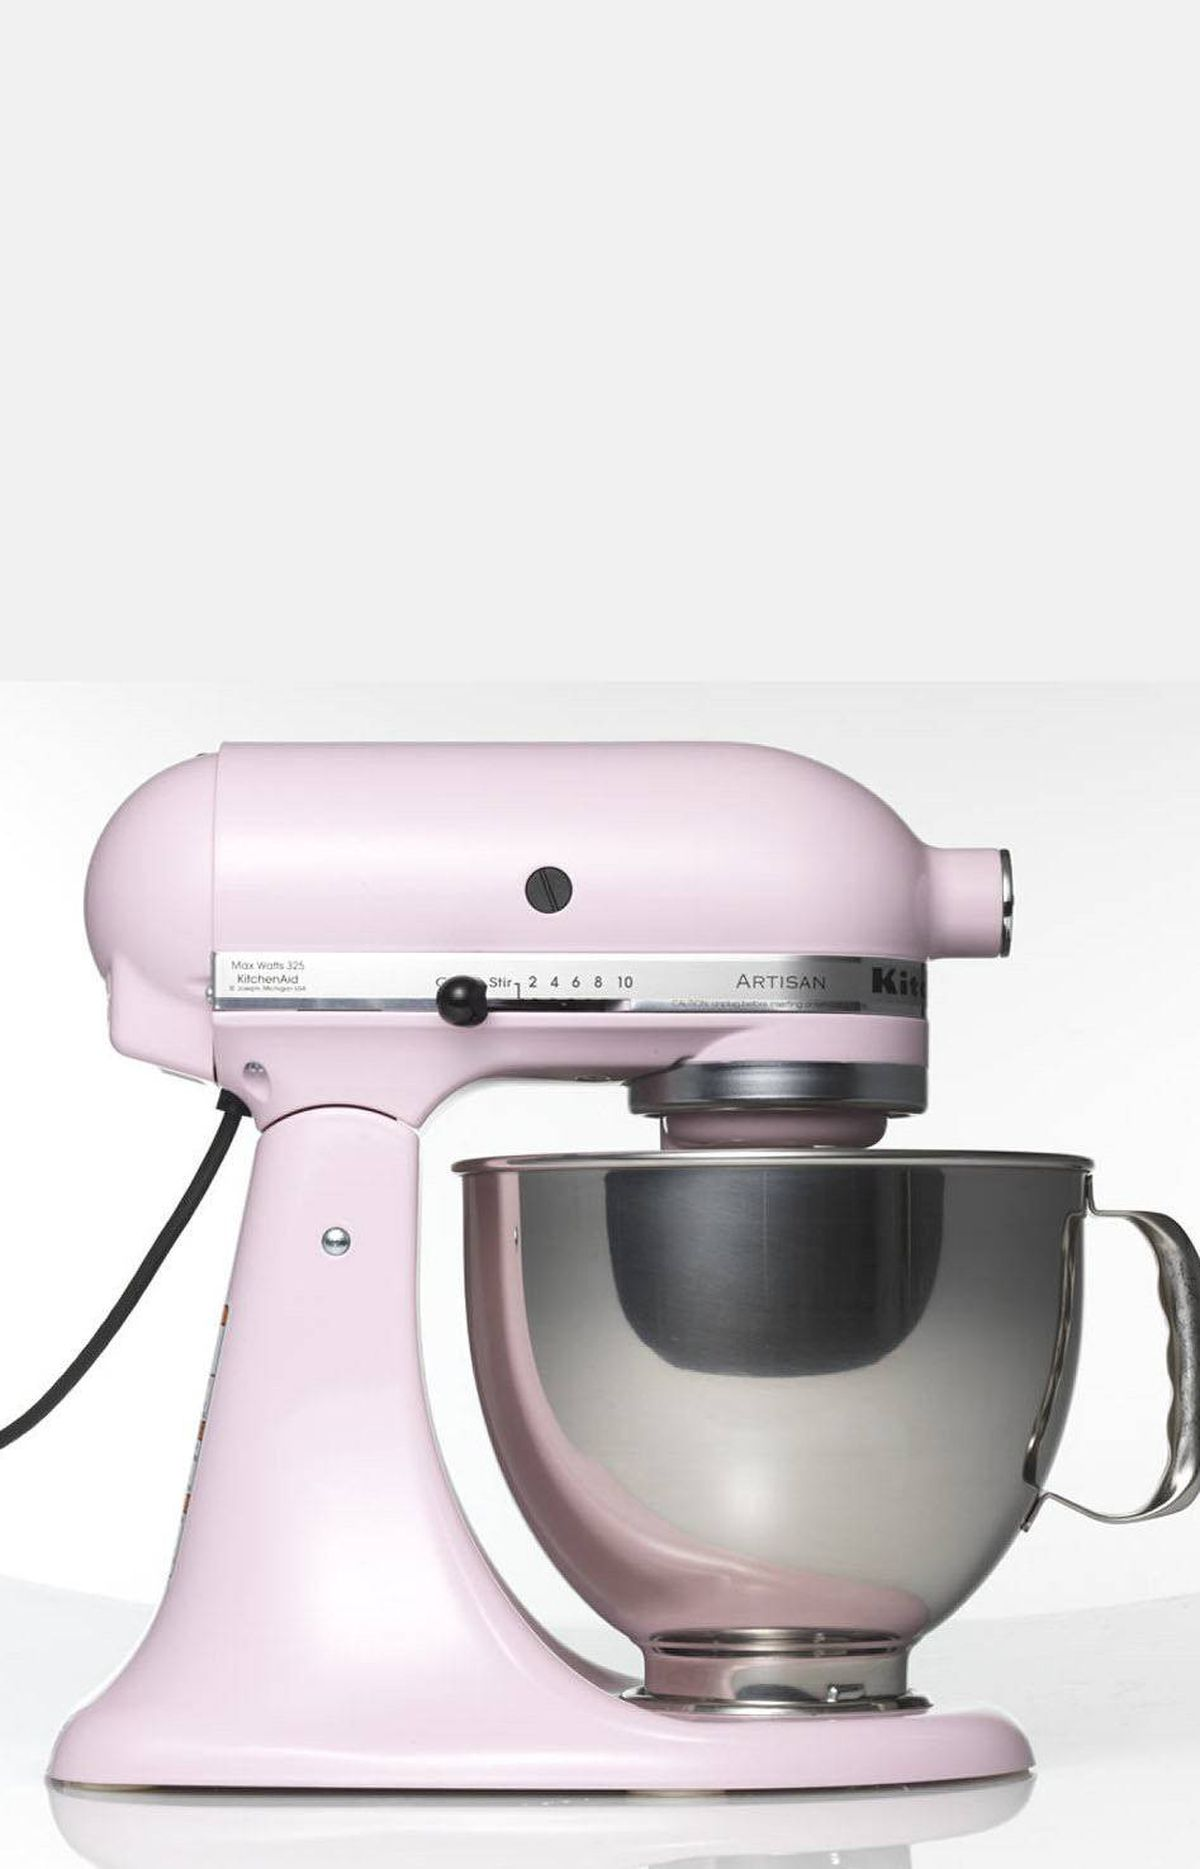 TREND: PASTELS Artisan 5-quart stand mixer by KitchenAid, $449 by special order at The Bay (www.thebay.com).